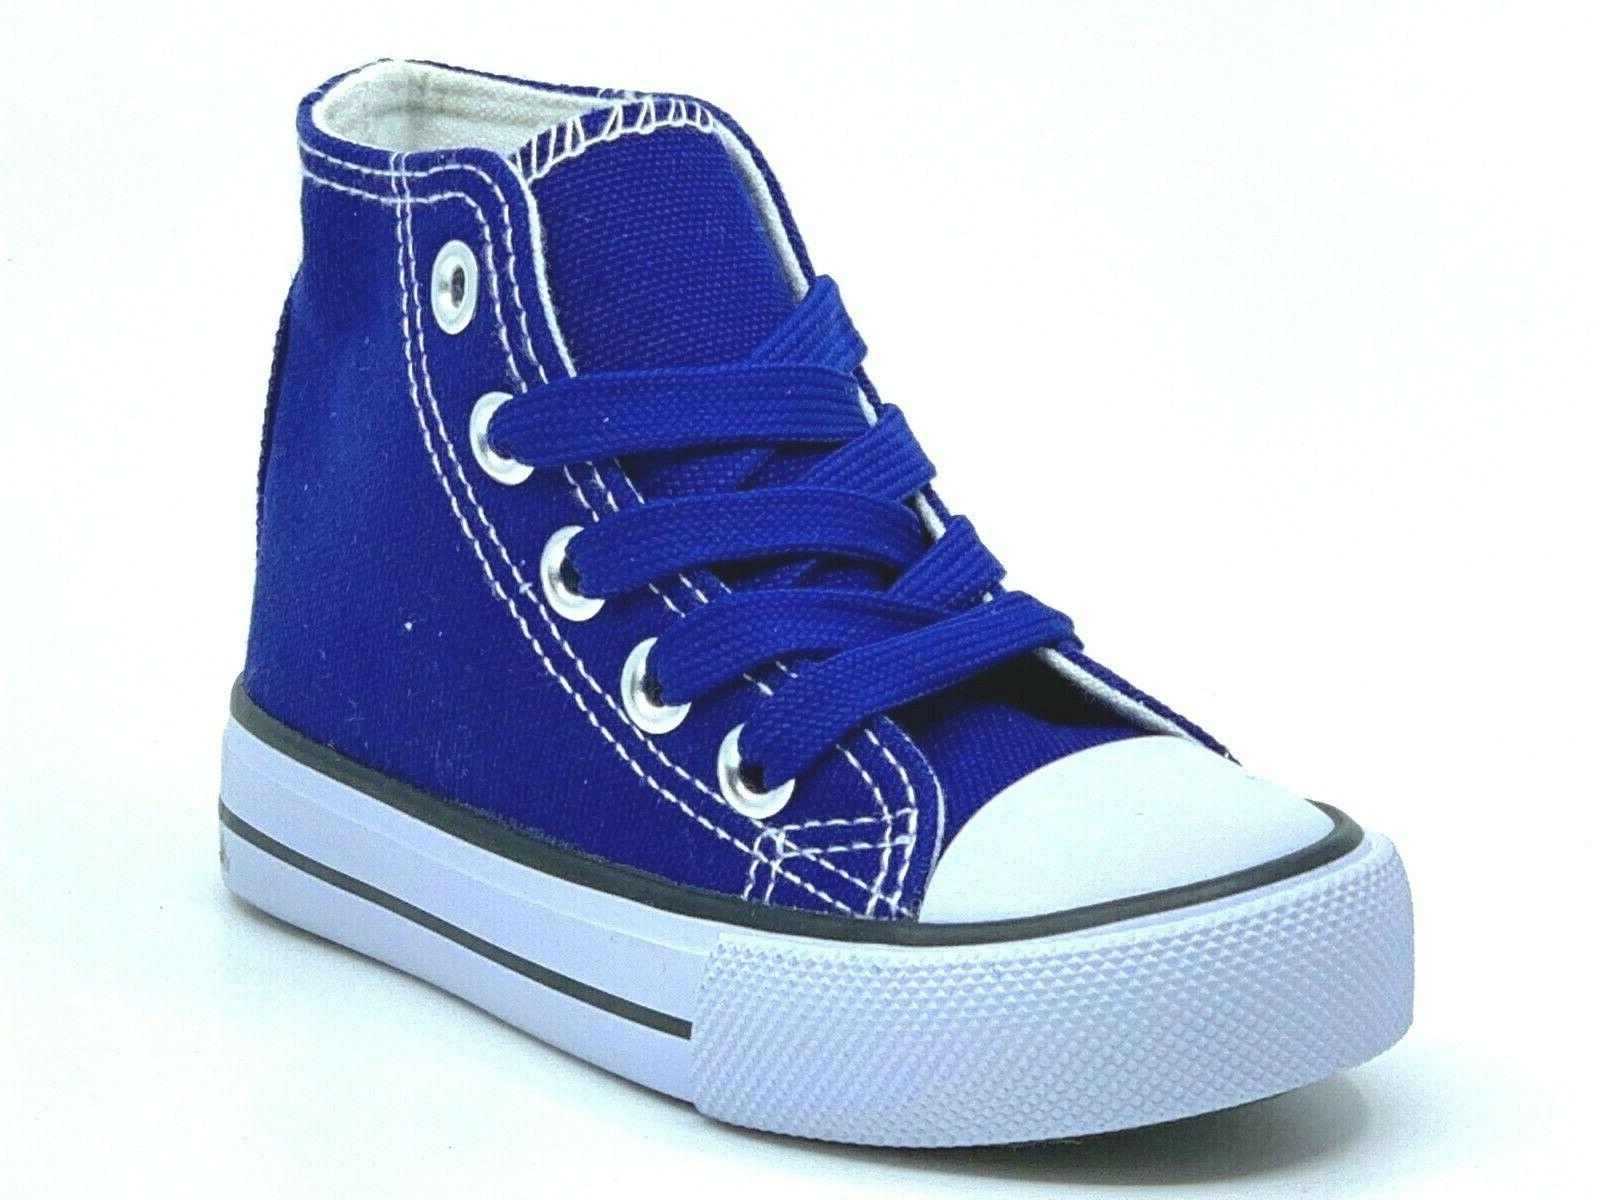 New Up High Top Toddler Boys Canvas Sneakers